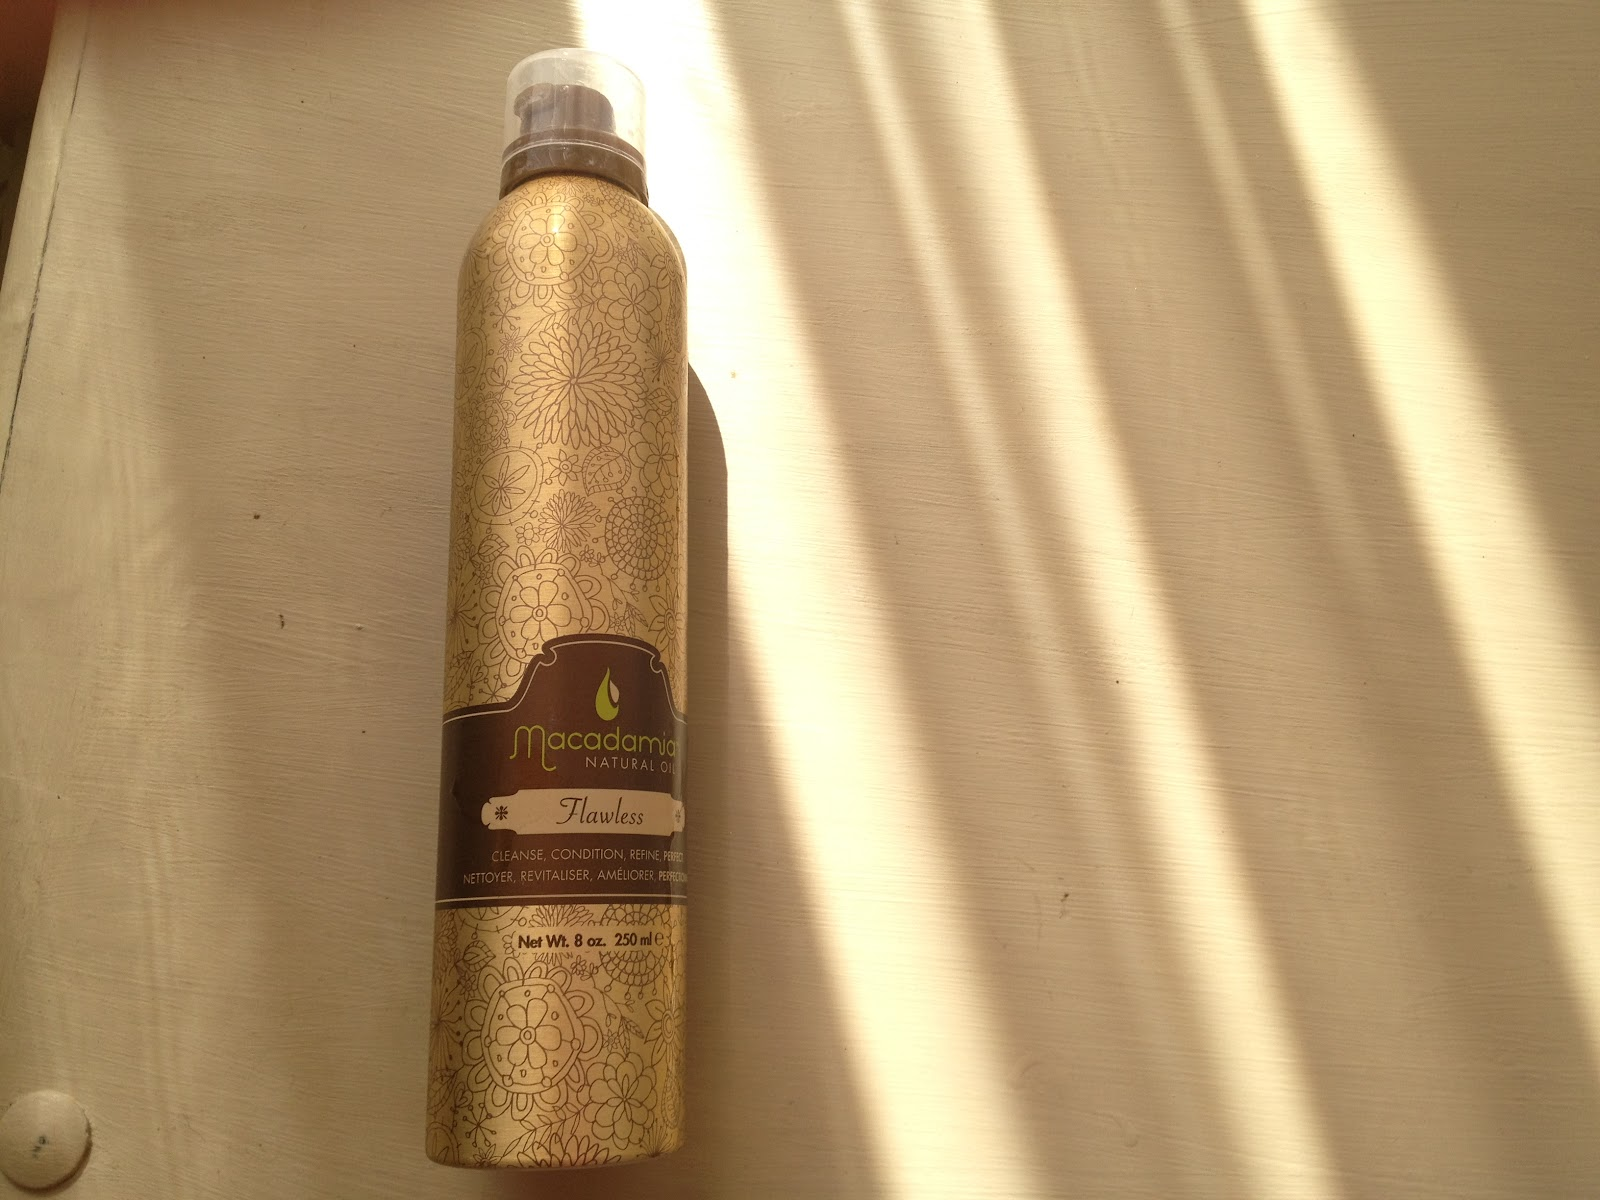 HAIR | Macadamia Flawless Shampoo Review